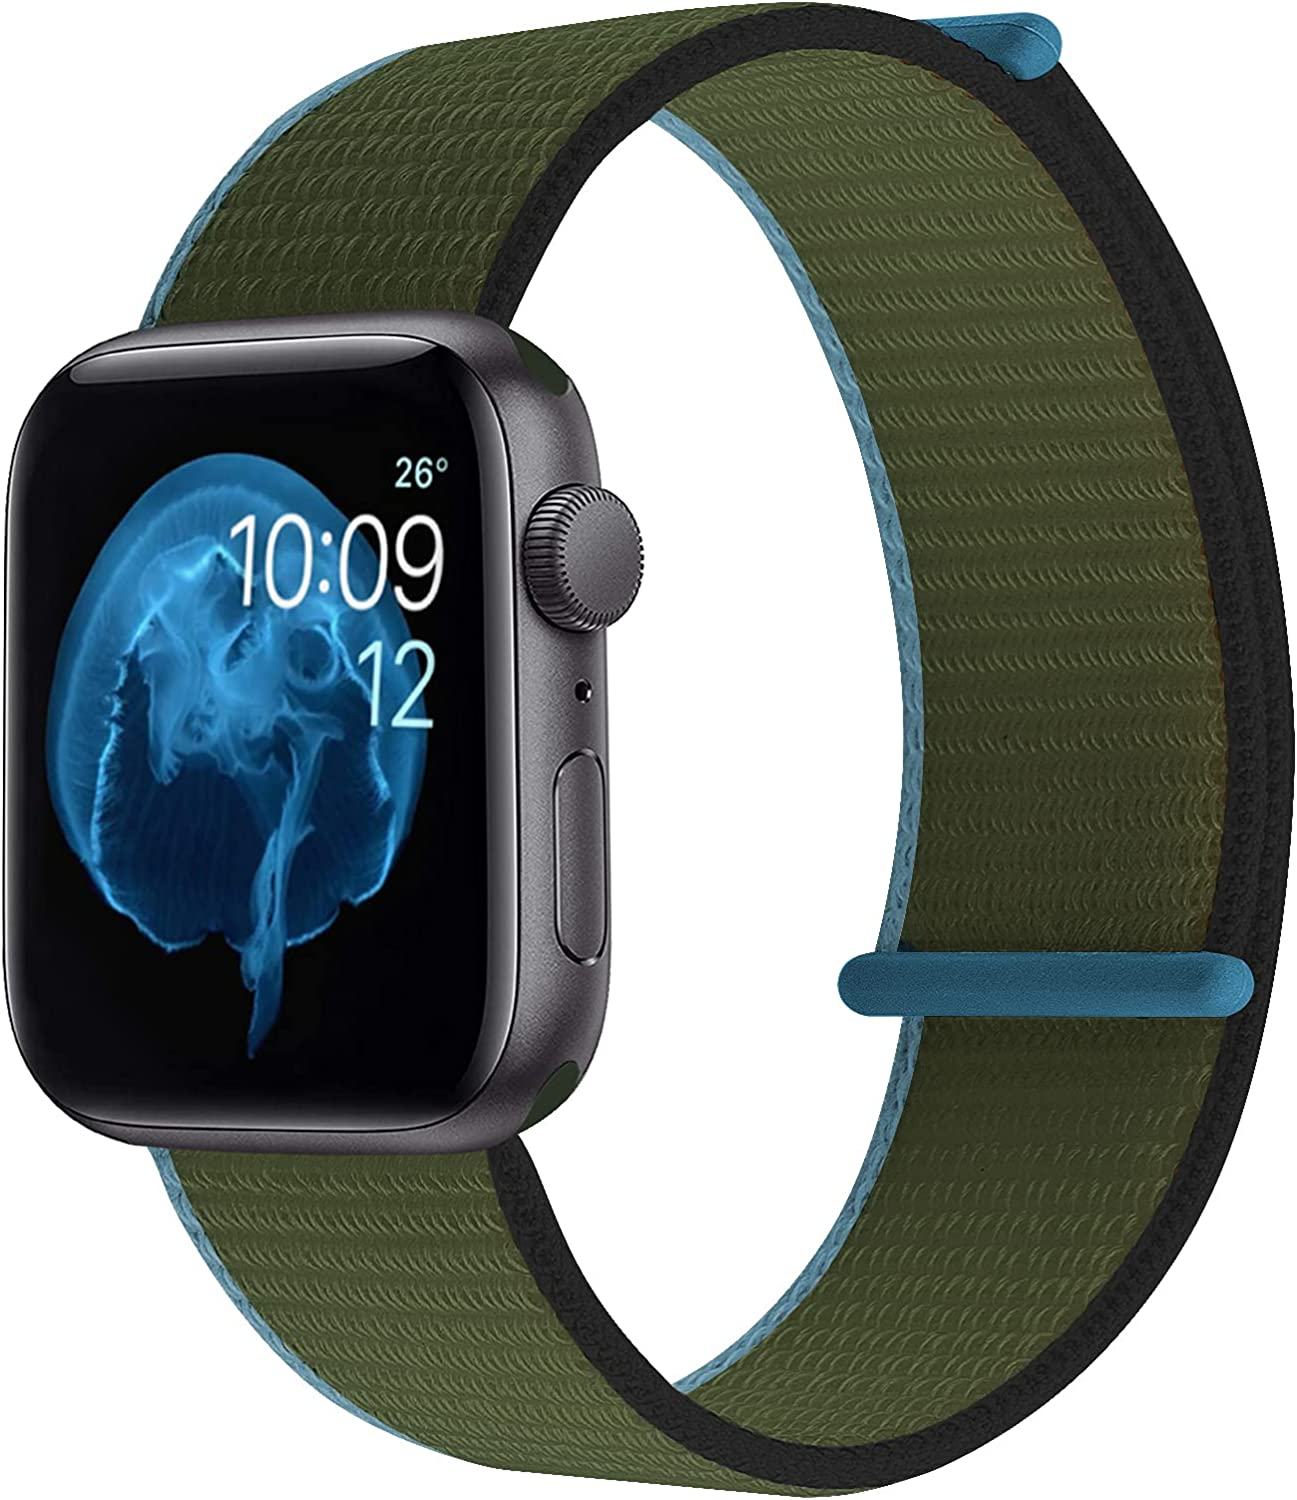 OMECKY Sport Nylon Watch Bands Compatible with Apple Watch Serices 6 5 4 3 2 1 SE Straps, Soft & Breathable Replacement Wristbands for iWatch 38mm 40mm 42mm 44mm